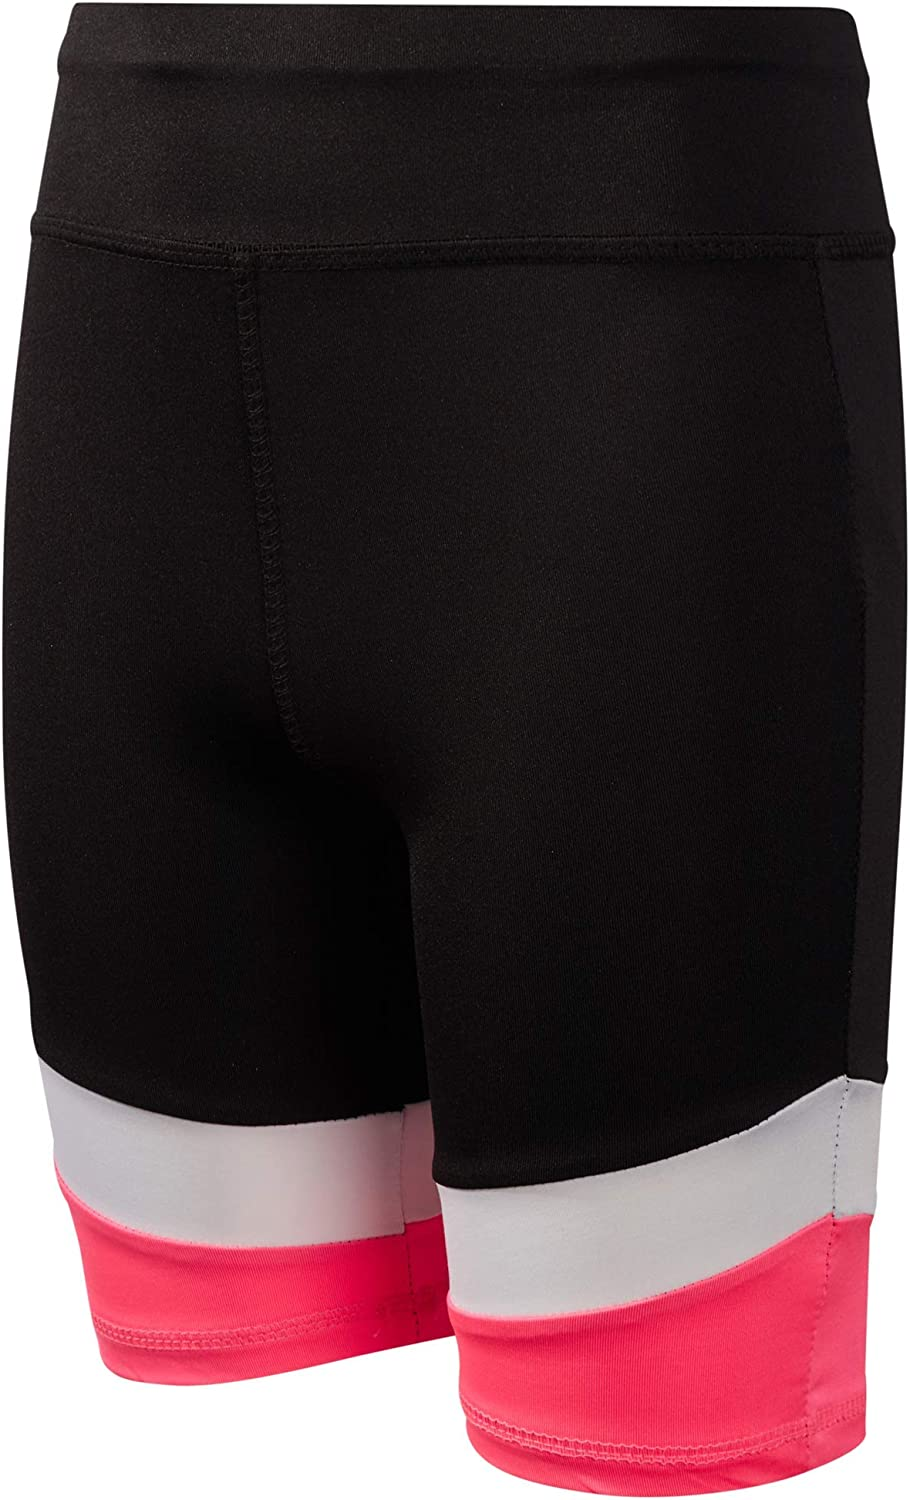 Reebok Girls Athletic Bike Shorts Long Length Workout Running Shorts 2 Pack